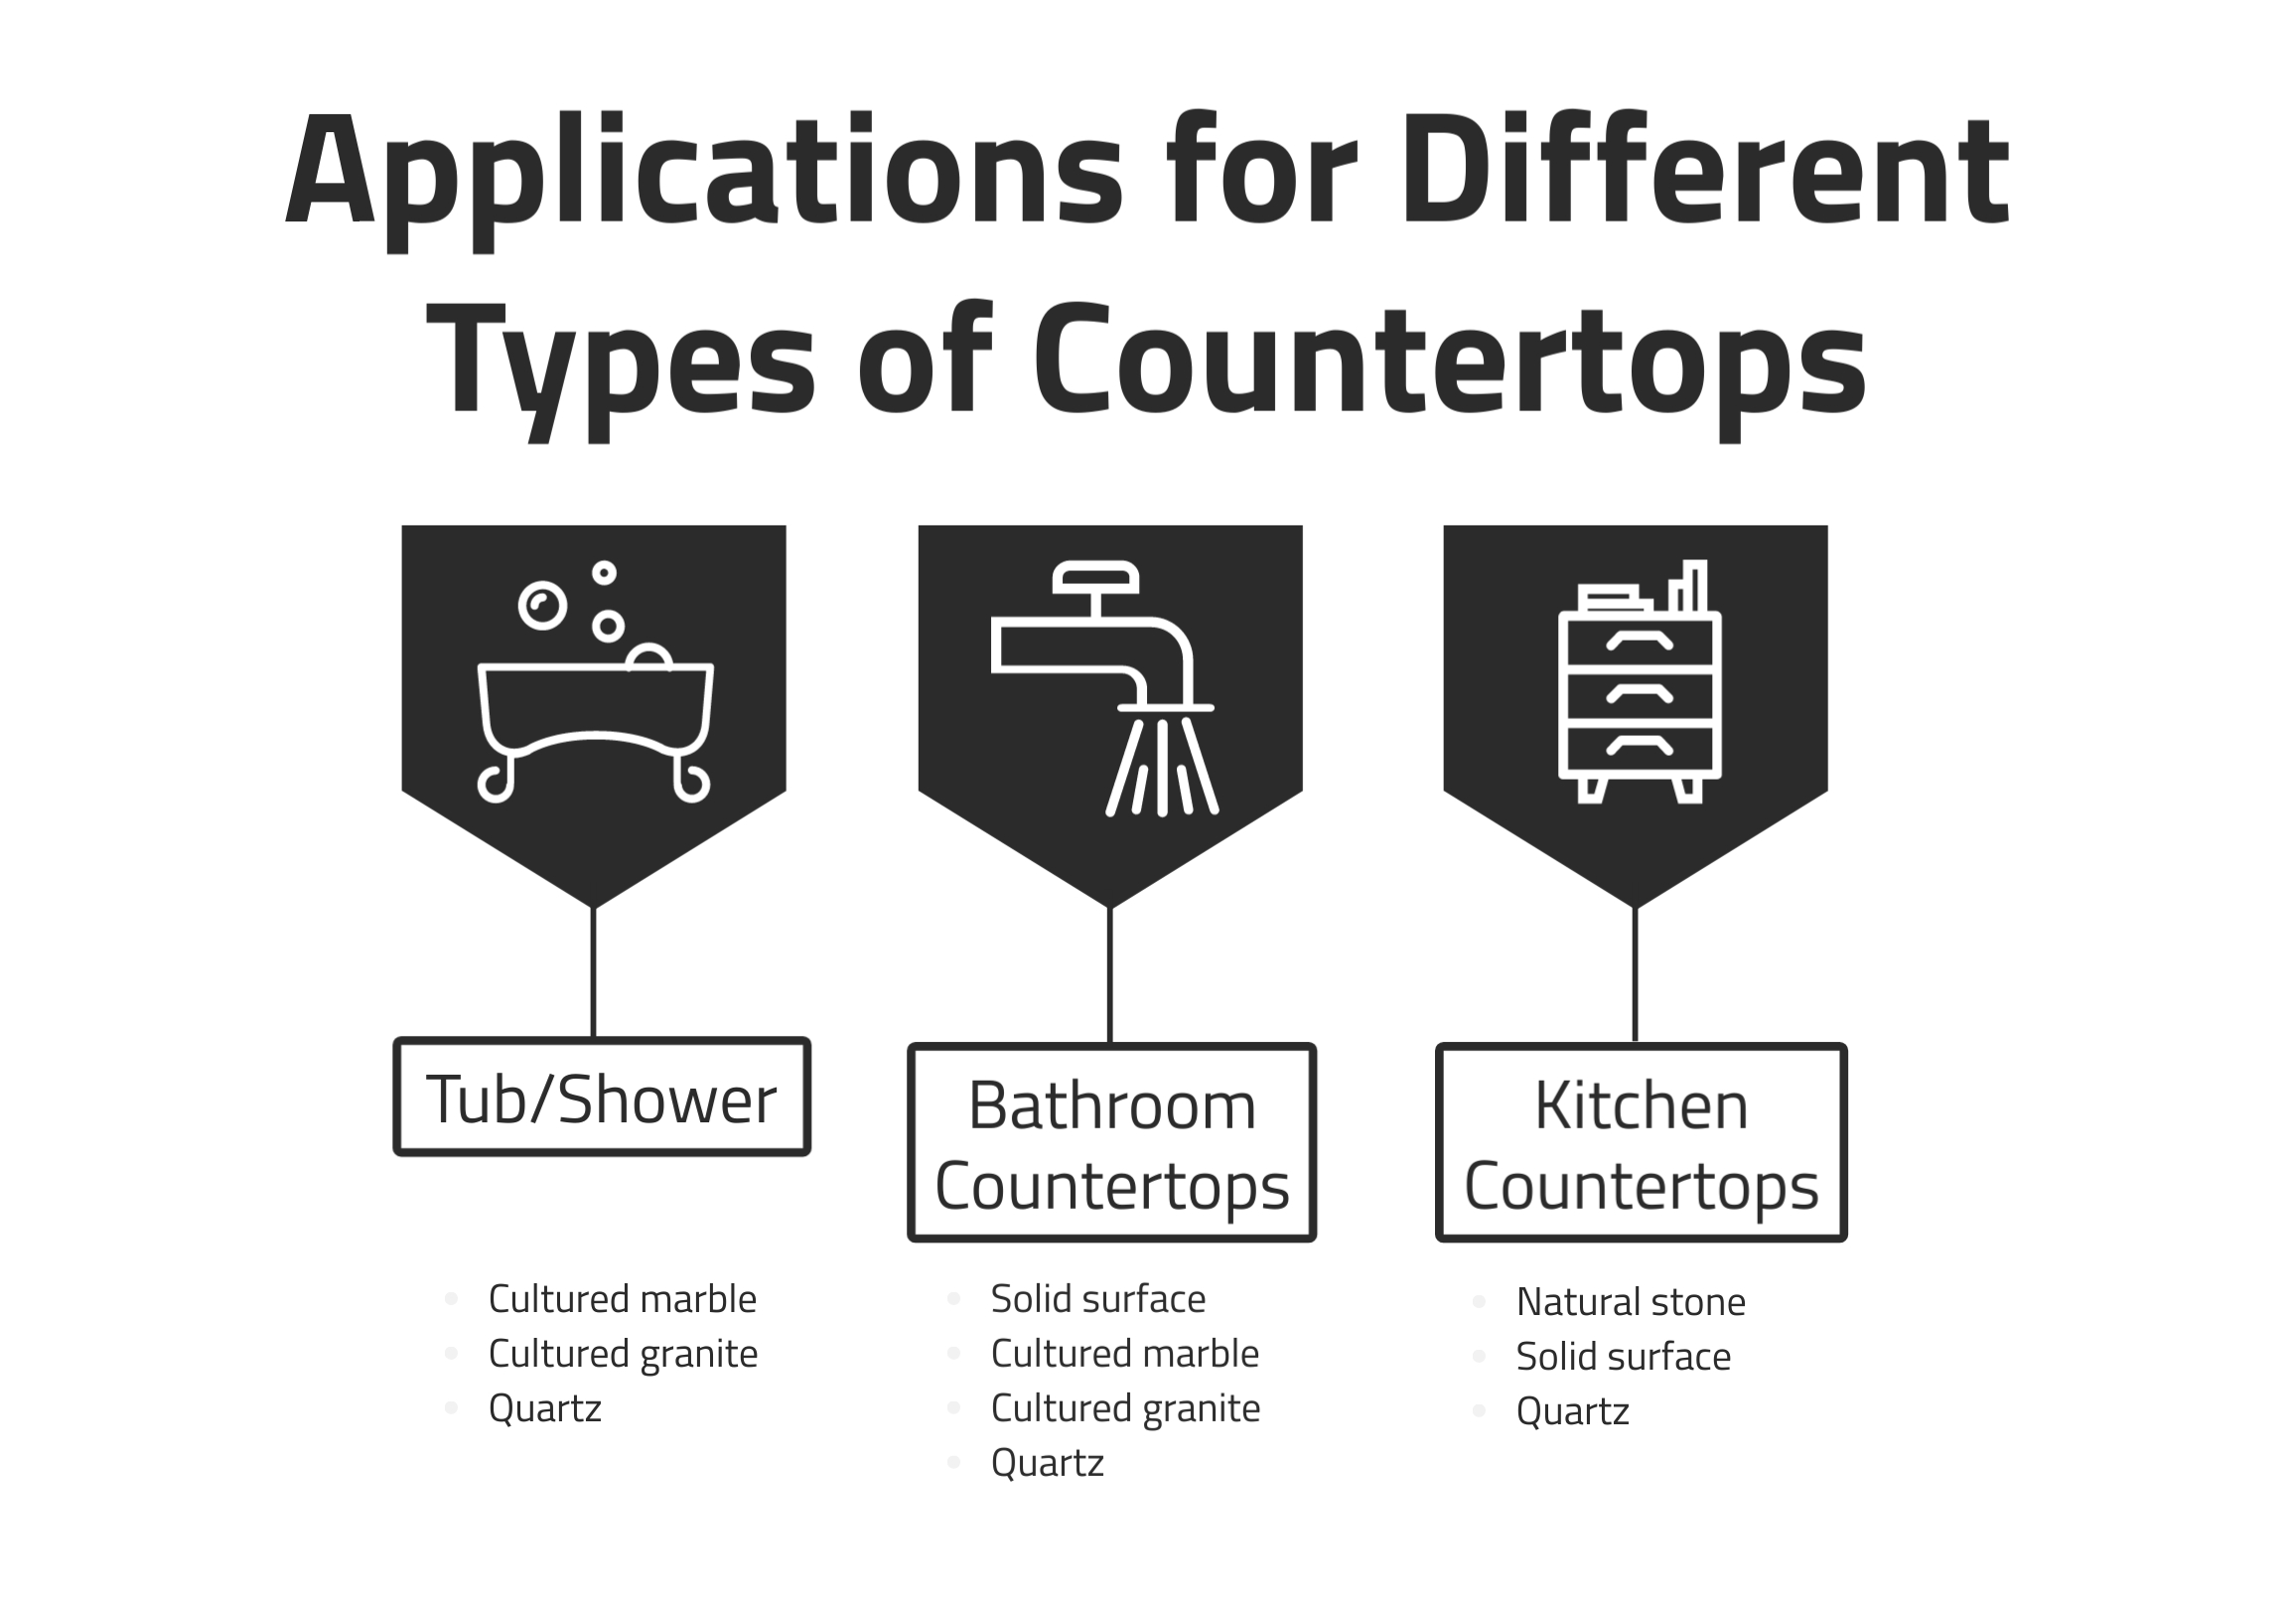 Applications for Different Types of Countertops, R&D Marble, Conroe, TX